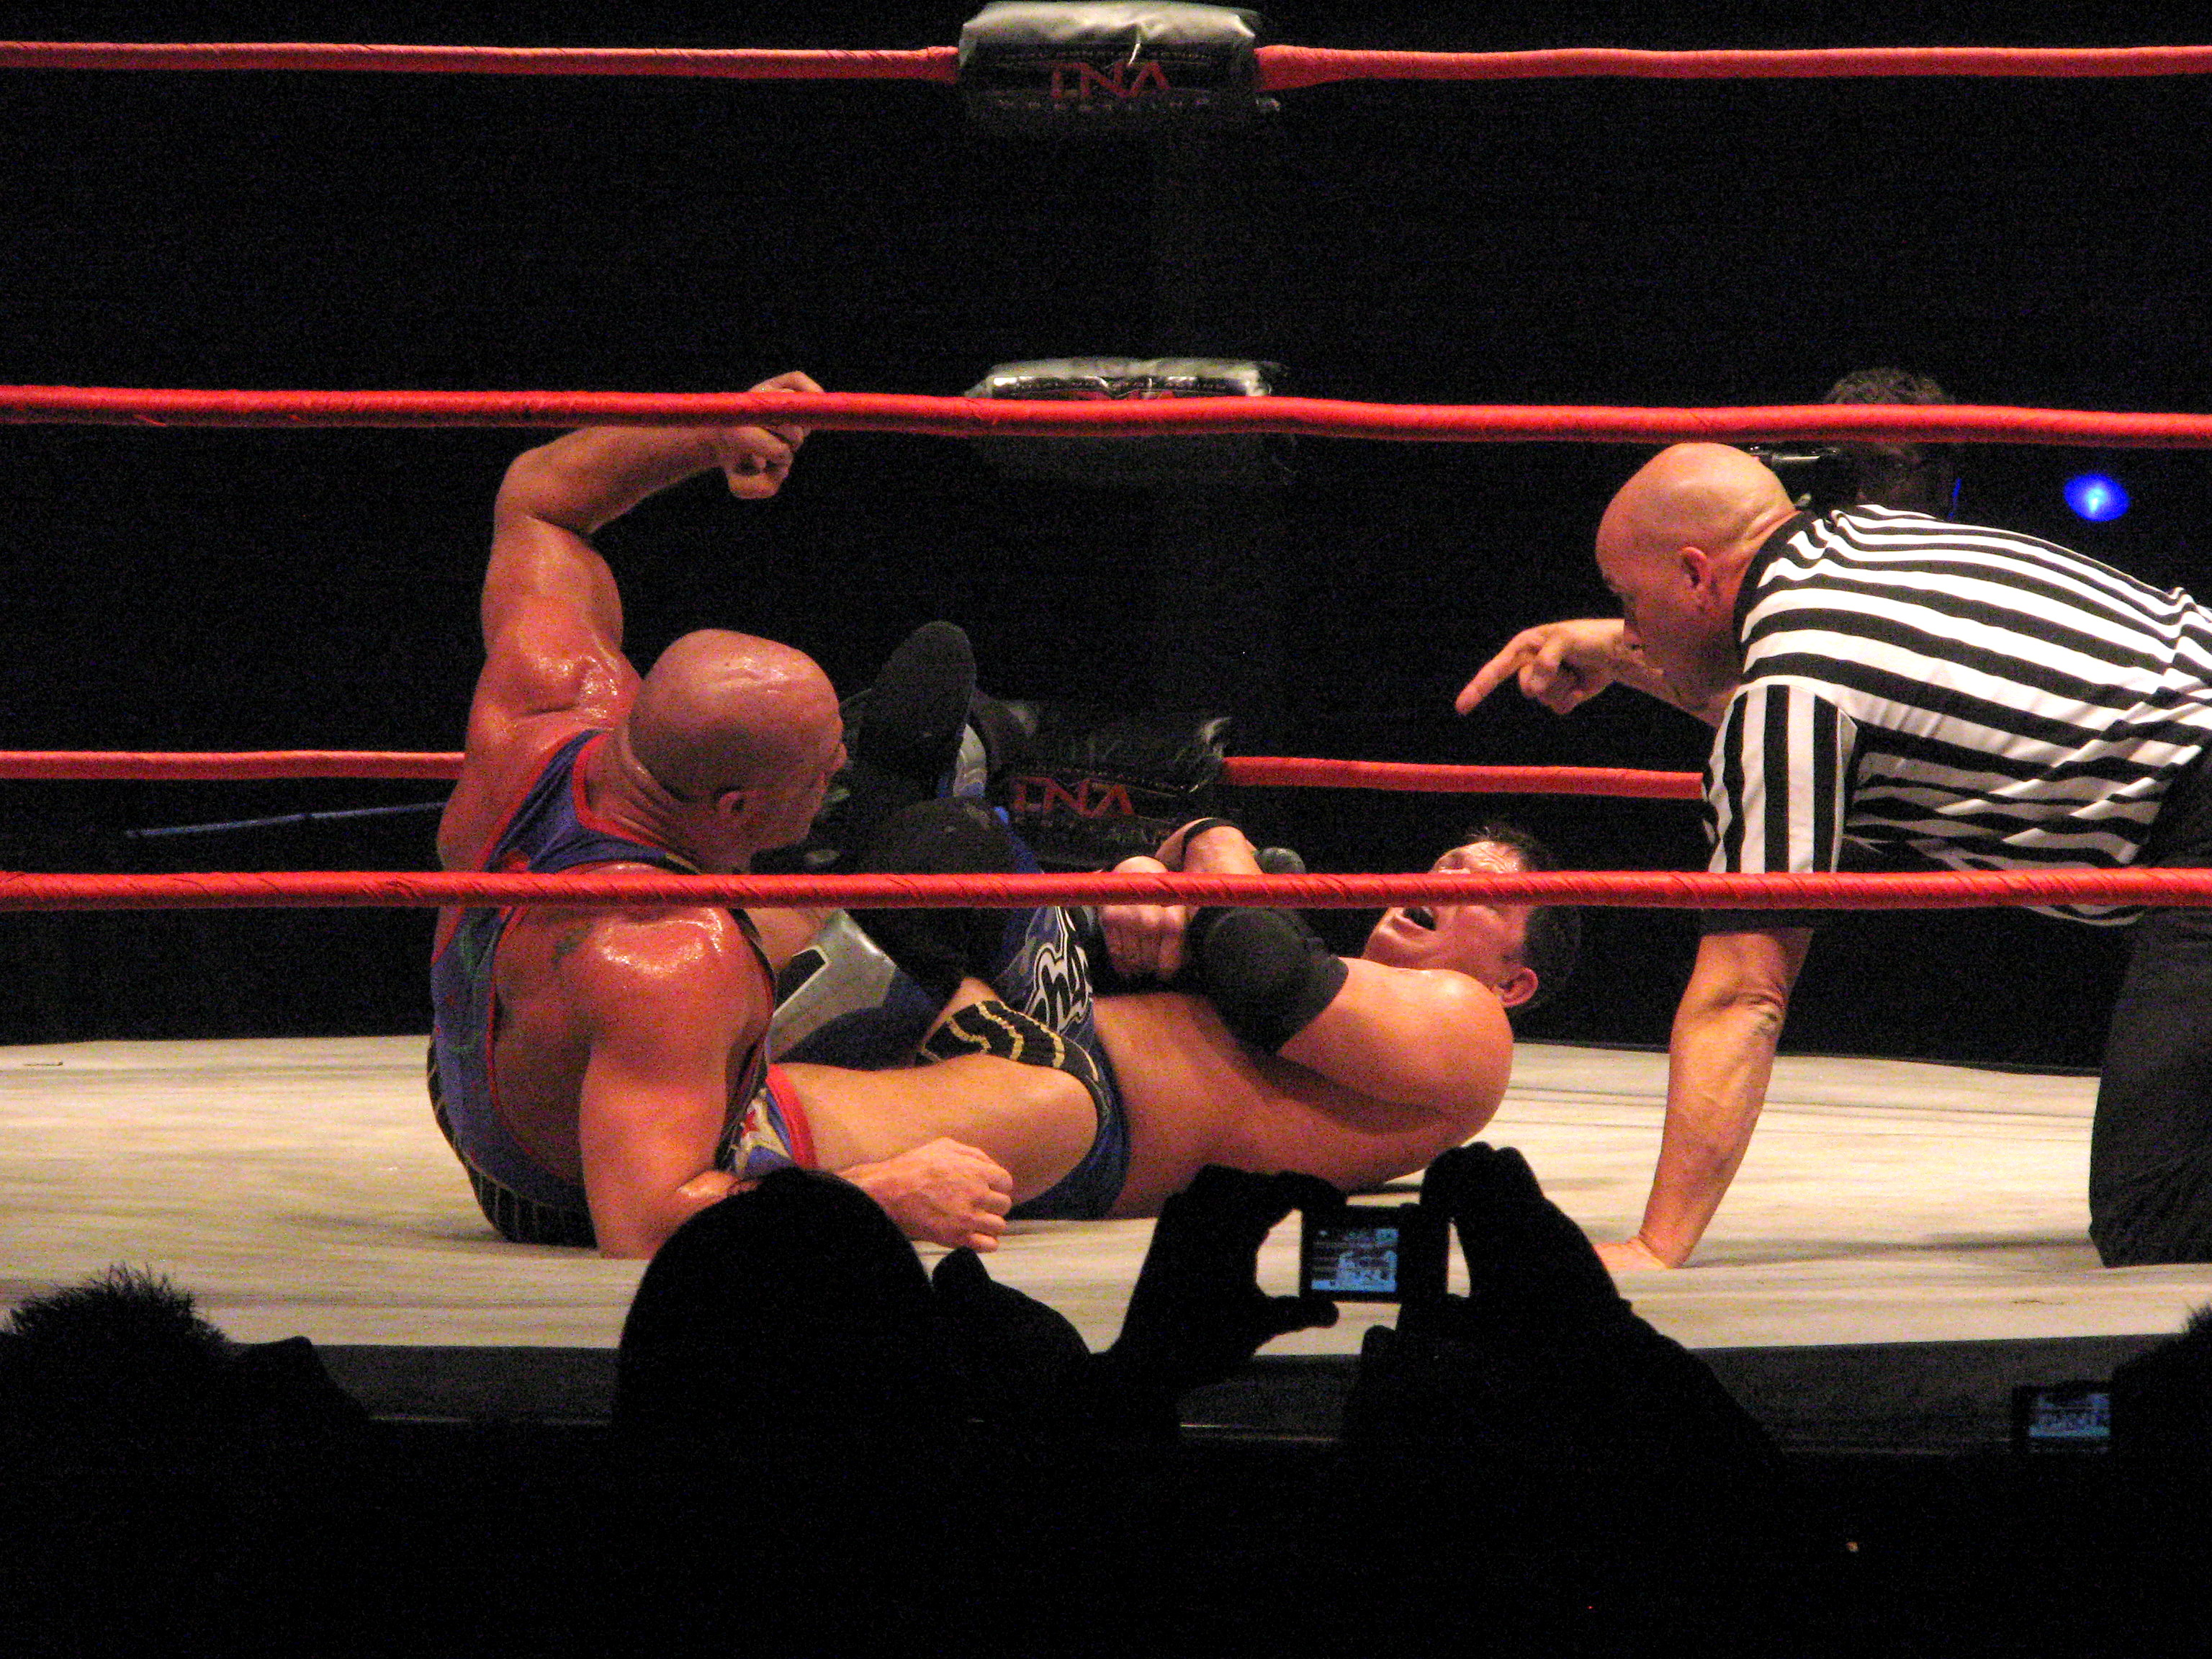 Styles applying a figure-four leglock on Kurt Angle.